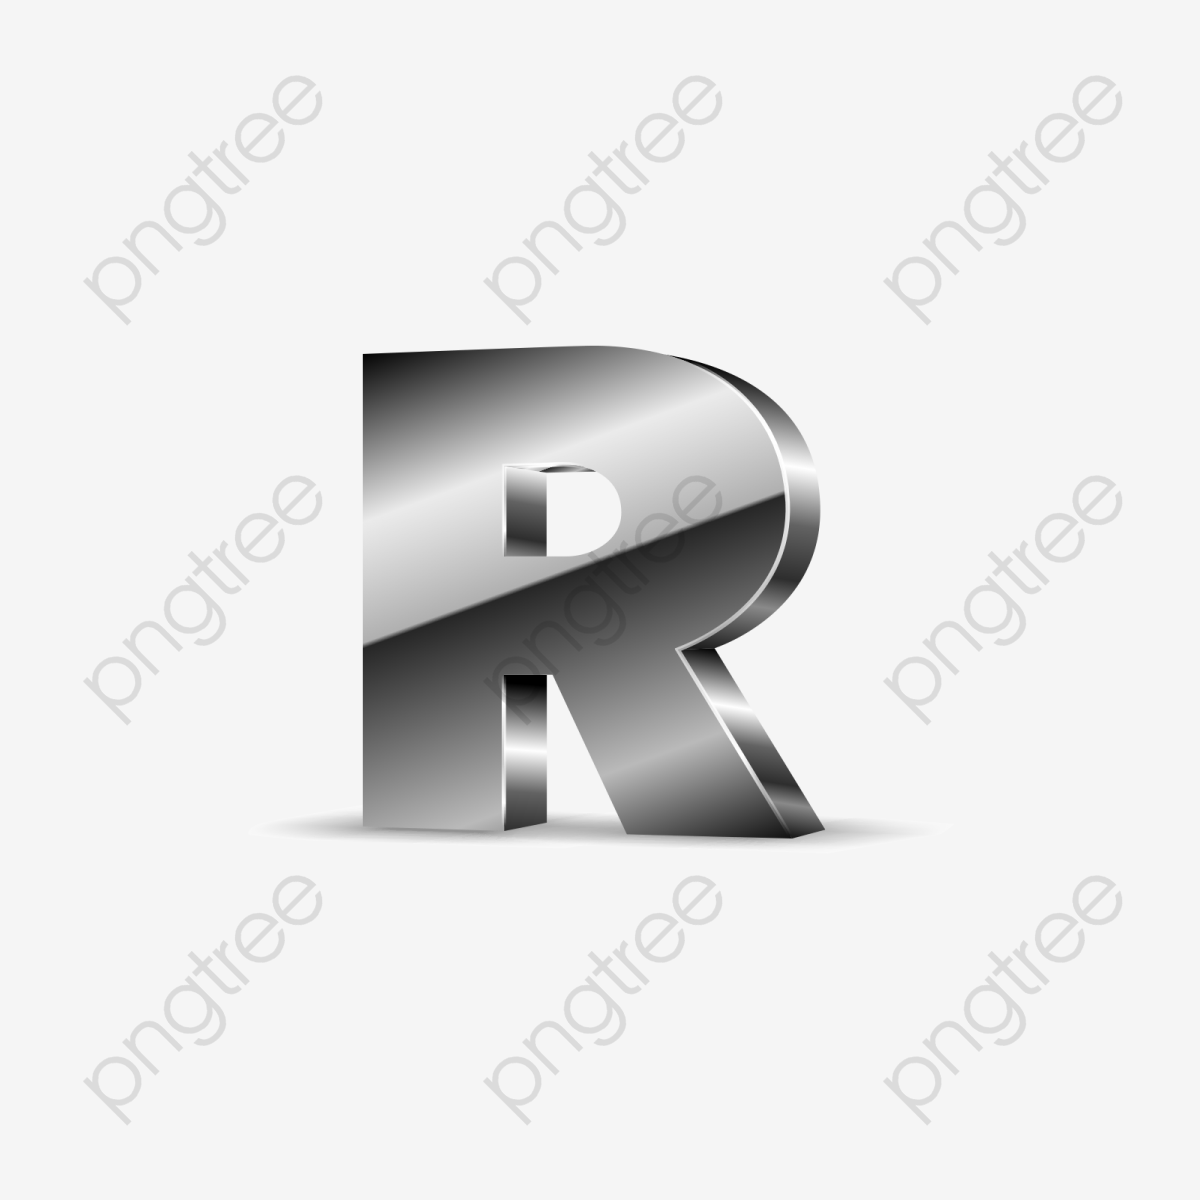 Silver Black Letters R Black Vector Silvery Black Png Transparent Clipart Image And Psd File For Free Download Black Letter Letter R Types Of Lettering